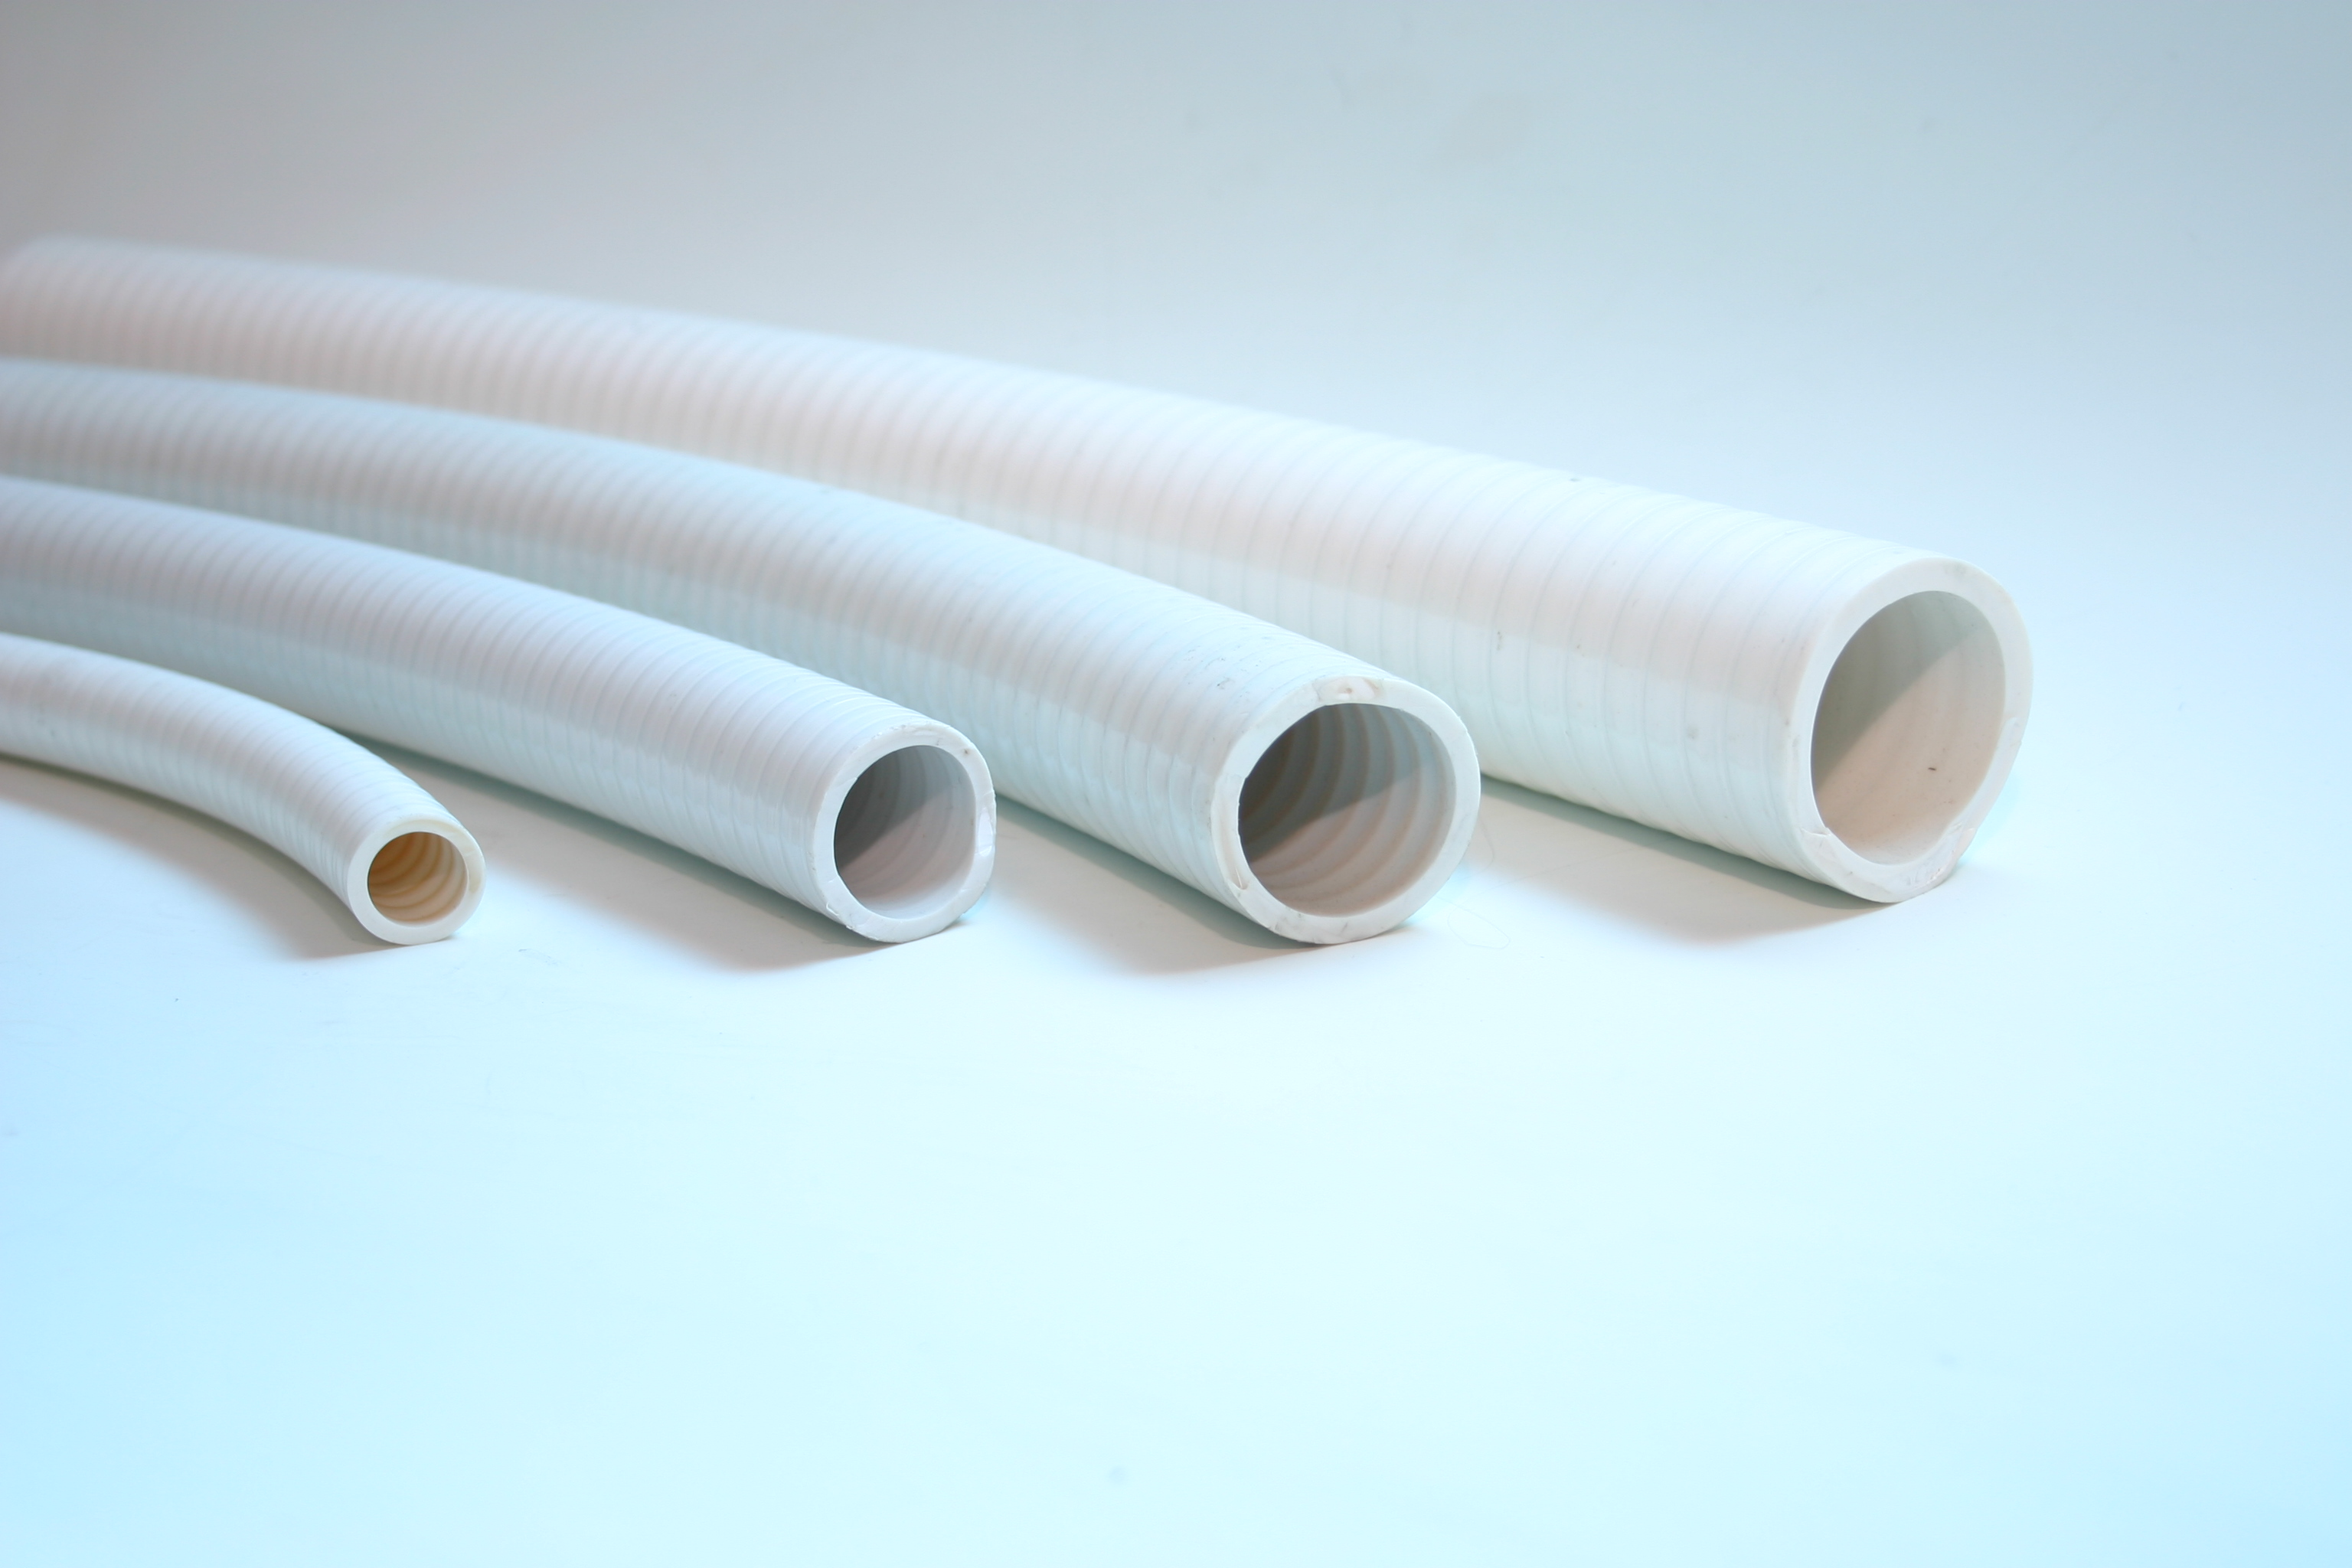 Pvc flexible hose pool pipe quot inch length m for suction